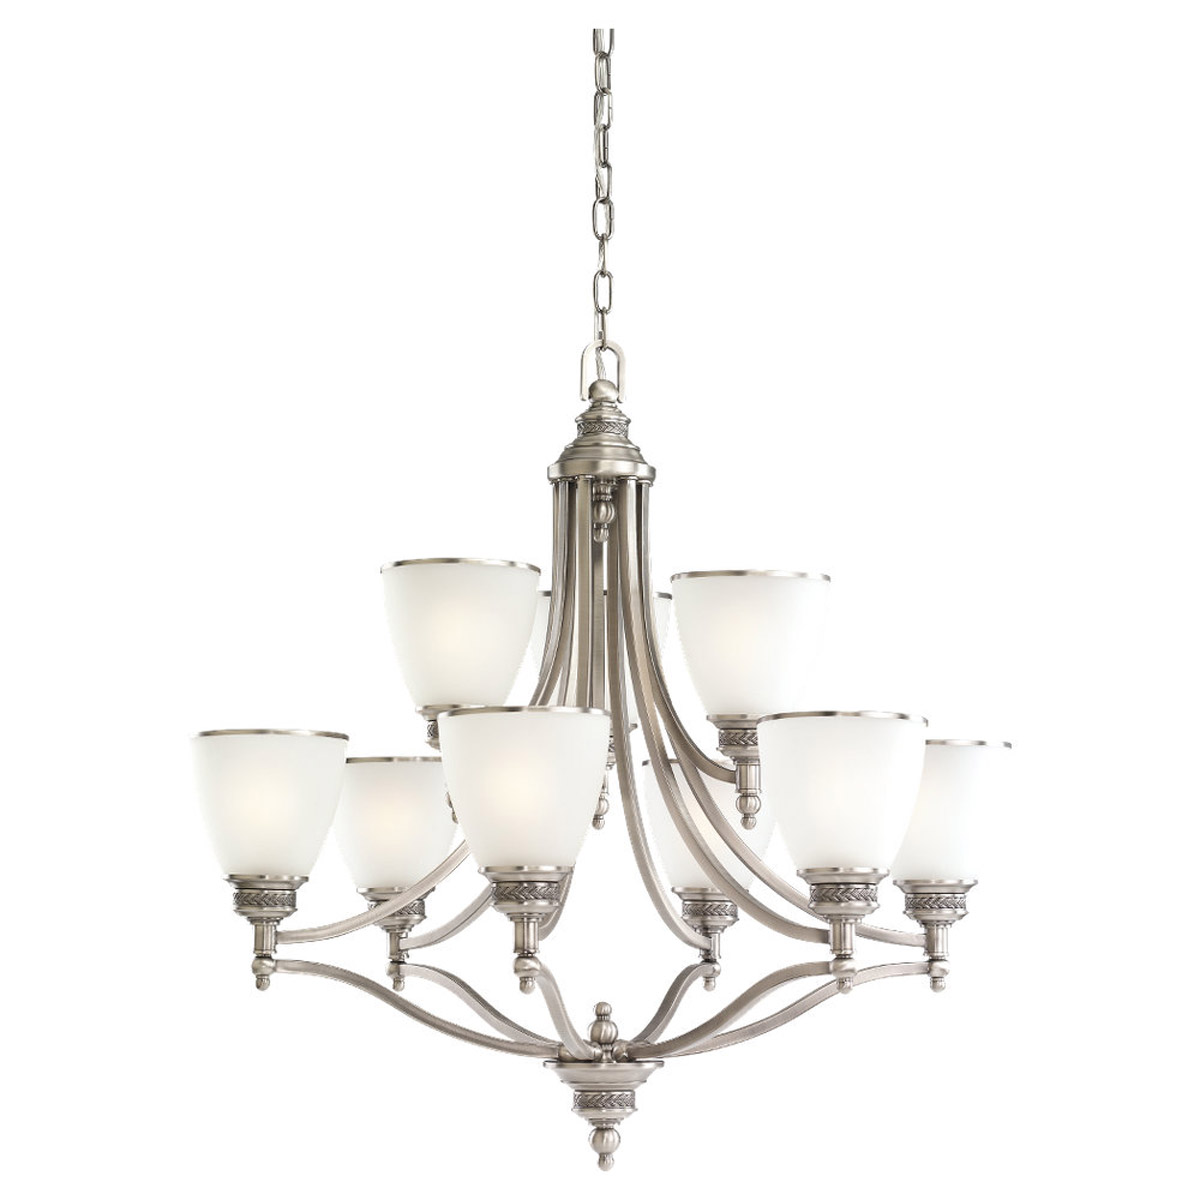 Sea Gull Lighting Laurel Leaf 9 Light Chandelier in Antique Brushed Nickel 31351-965 photo